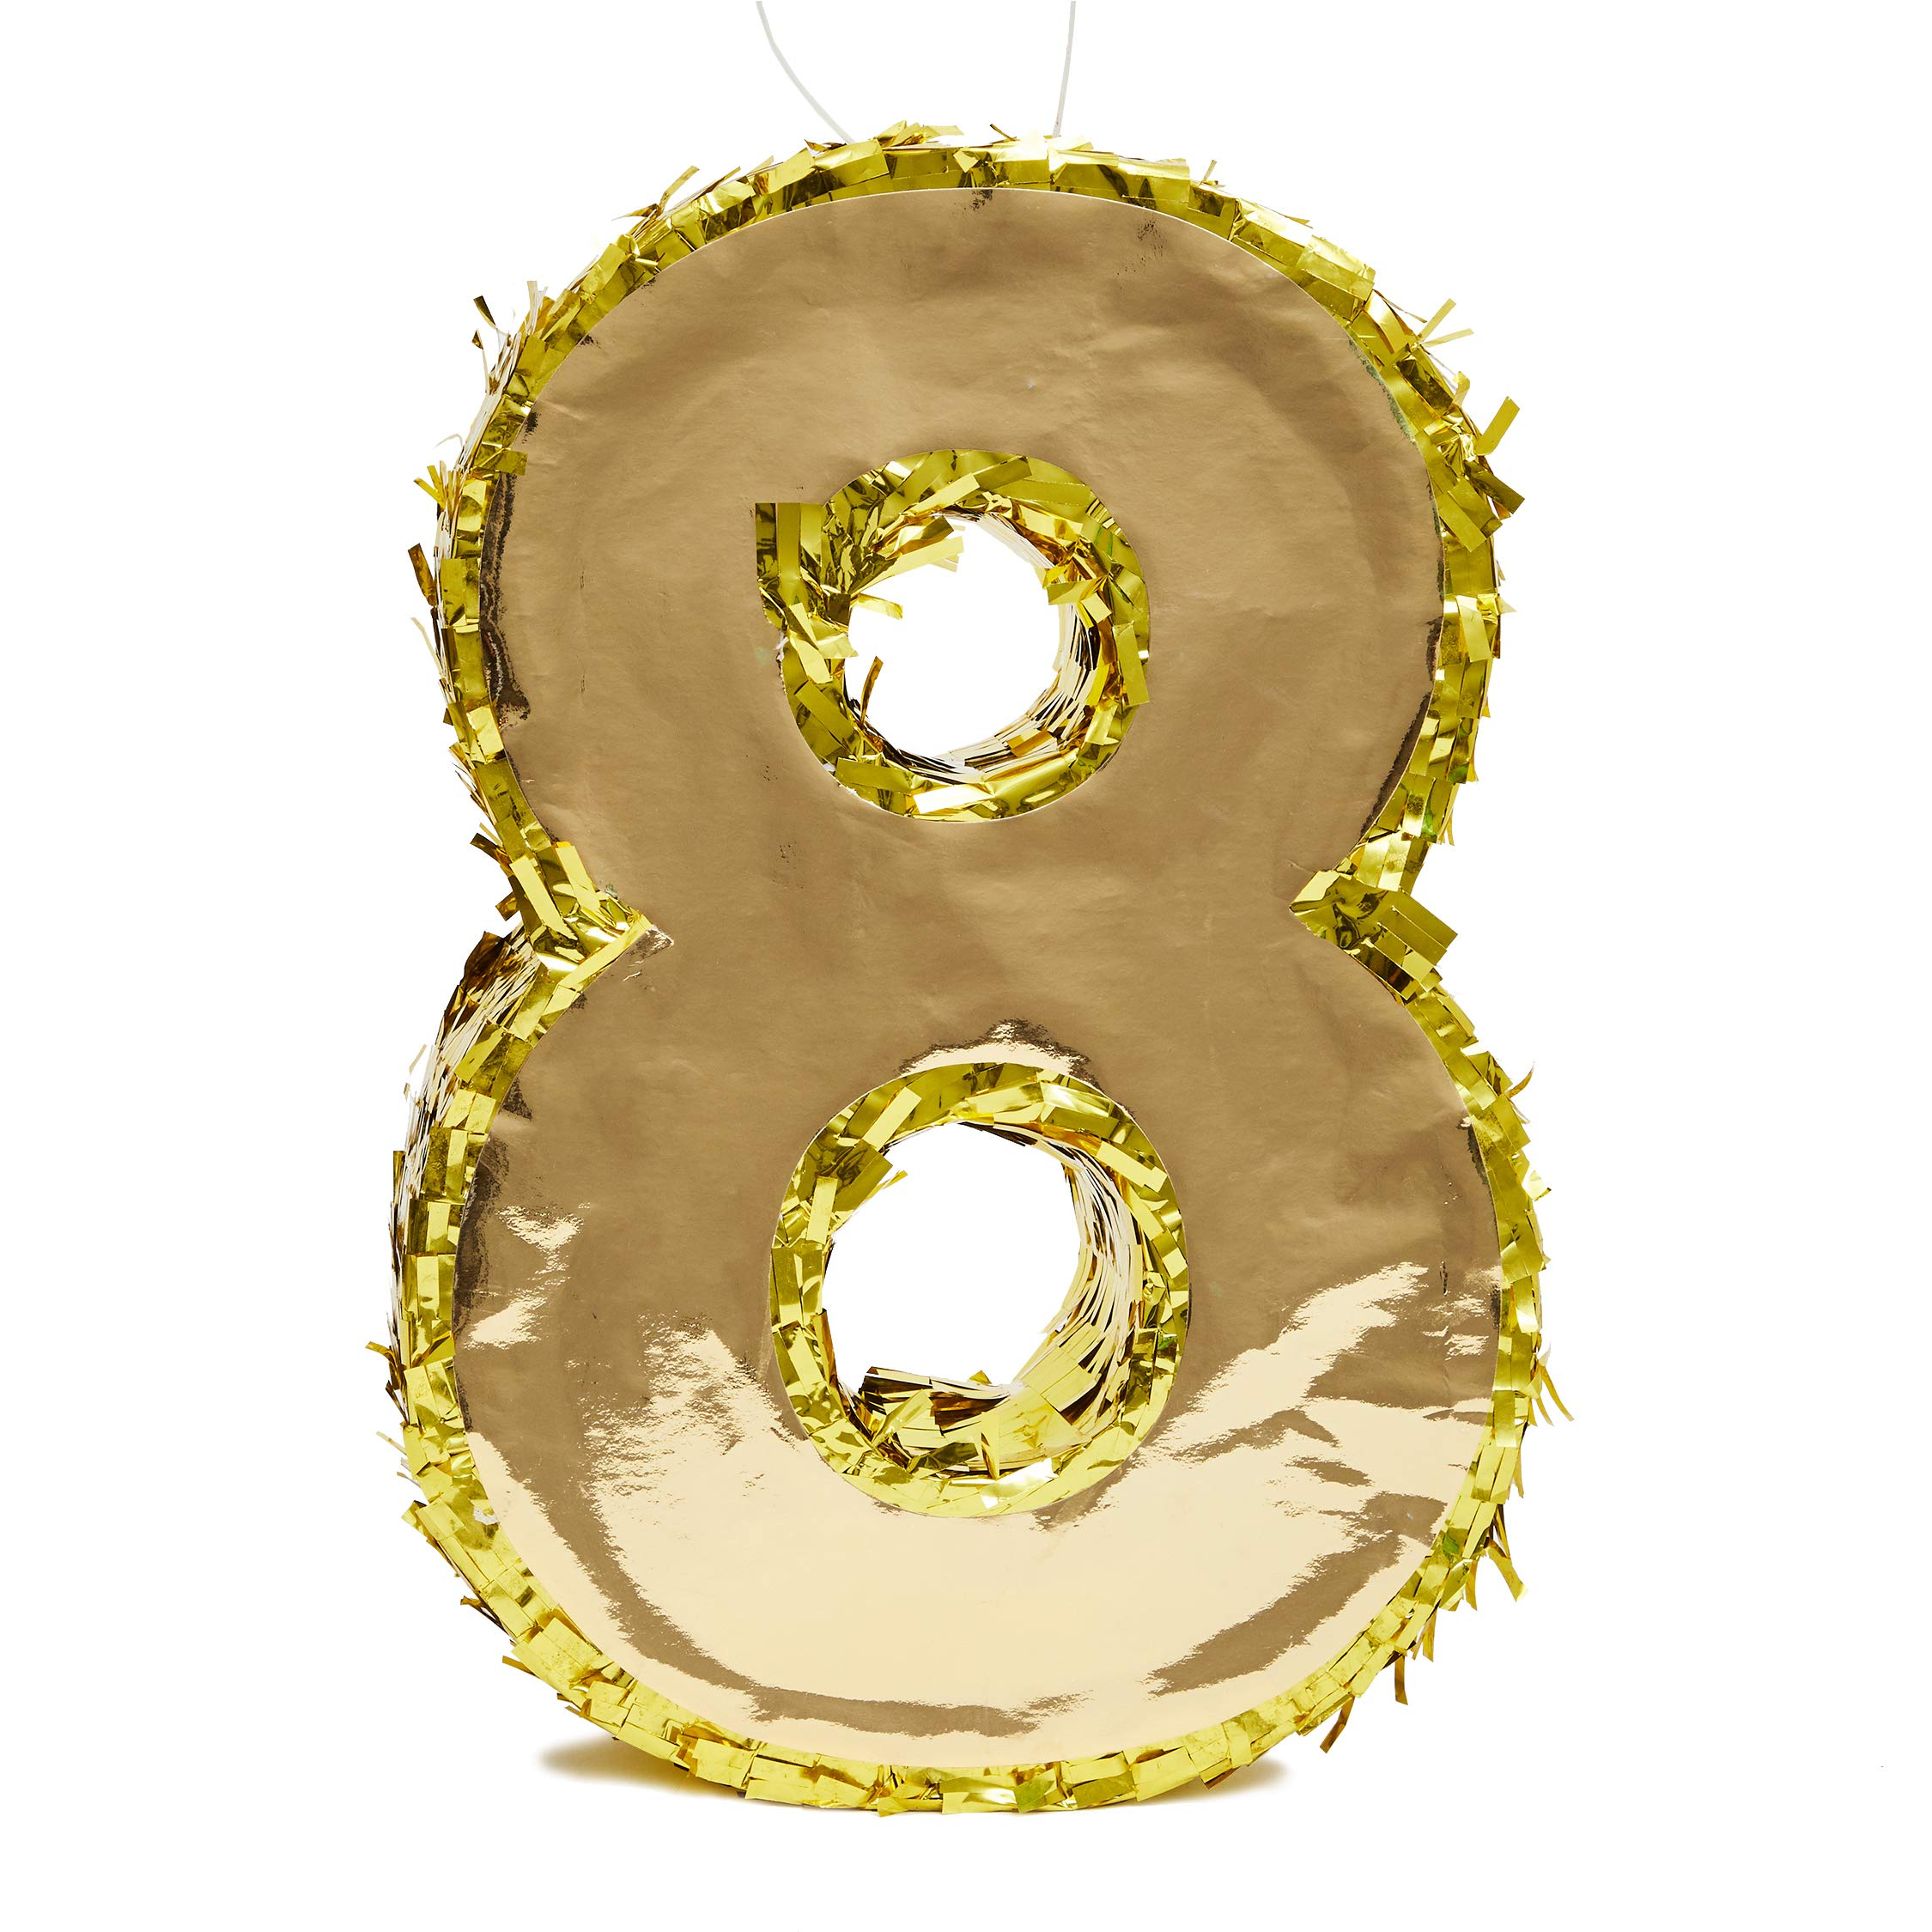 Juvale Small Number 8 Gold Foil Pinata, Eighth Birthday Party Supplies, 15.5 x 10.5 x 3 Inches